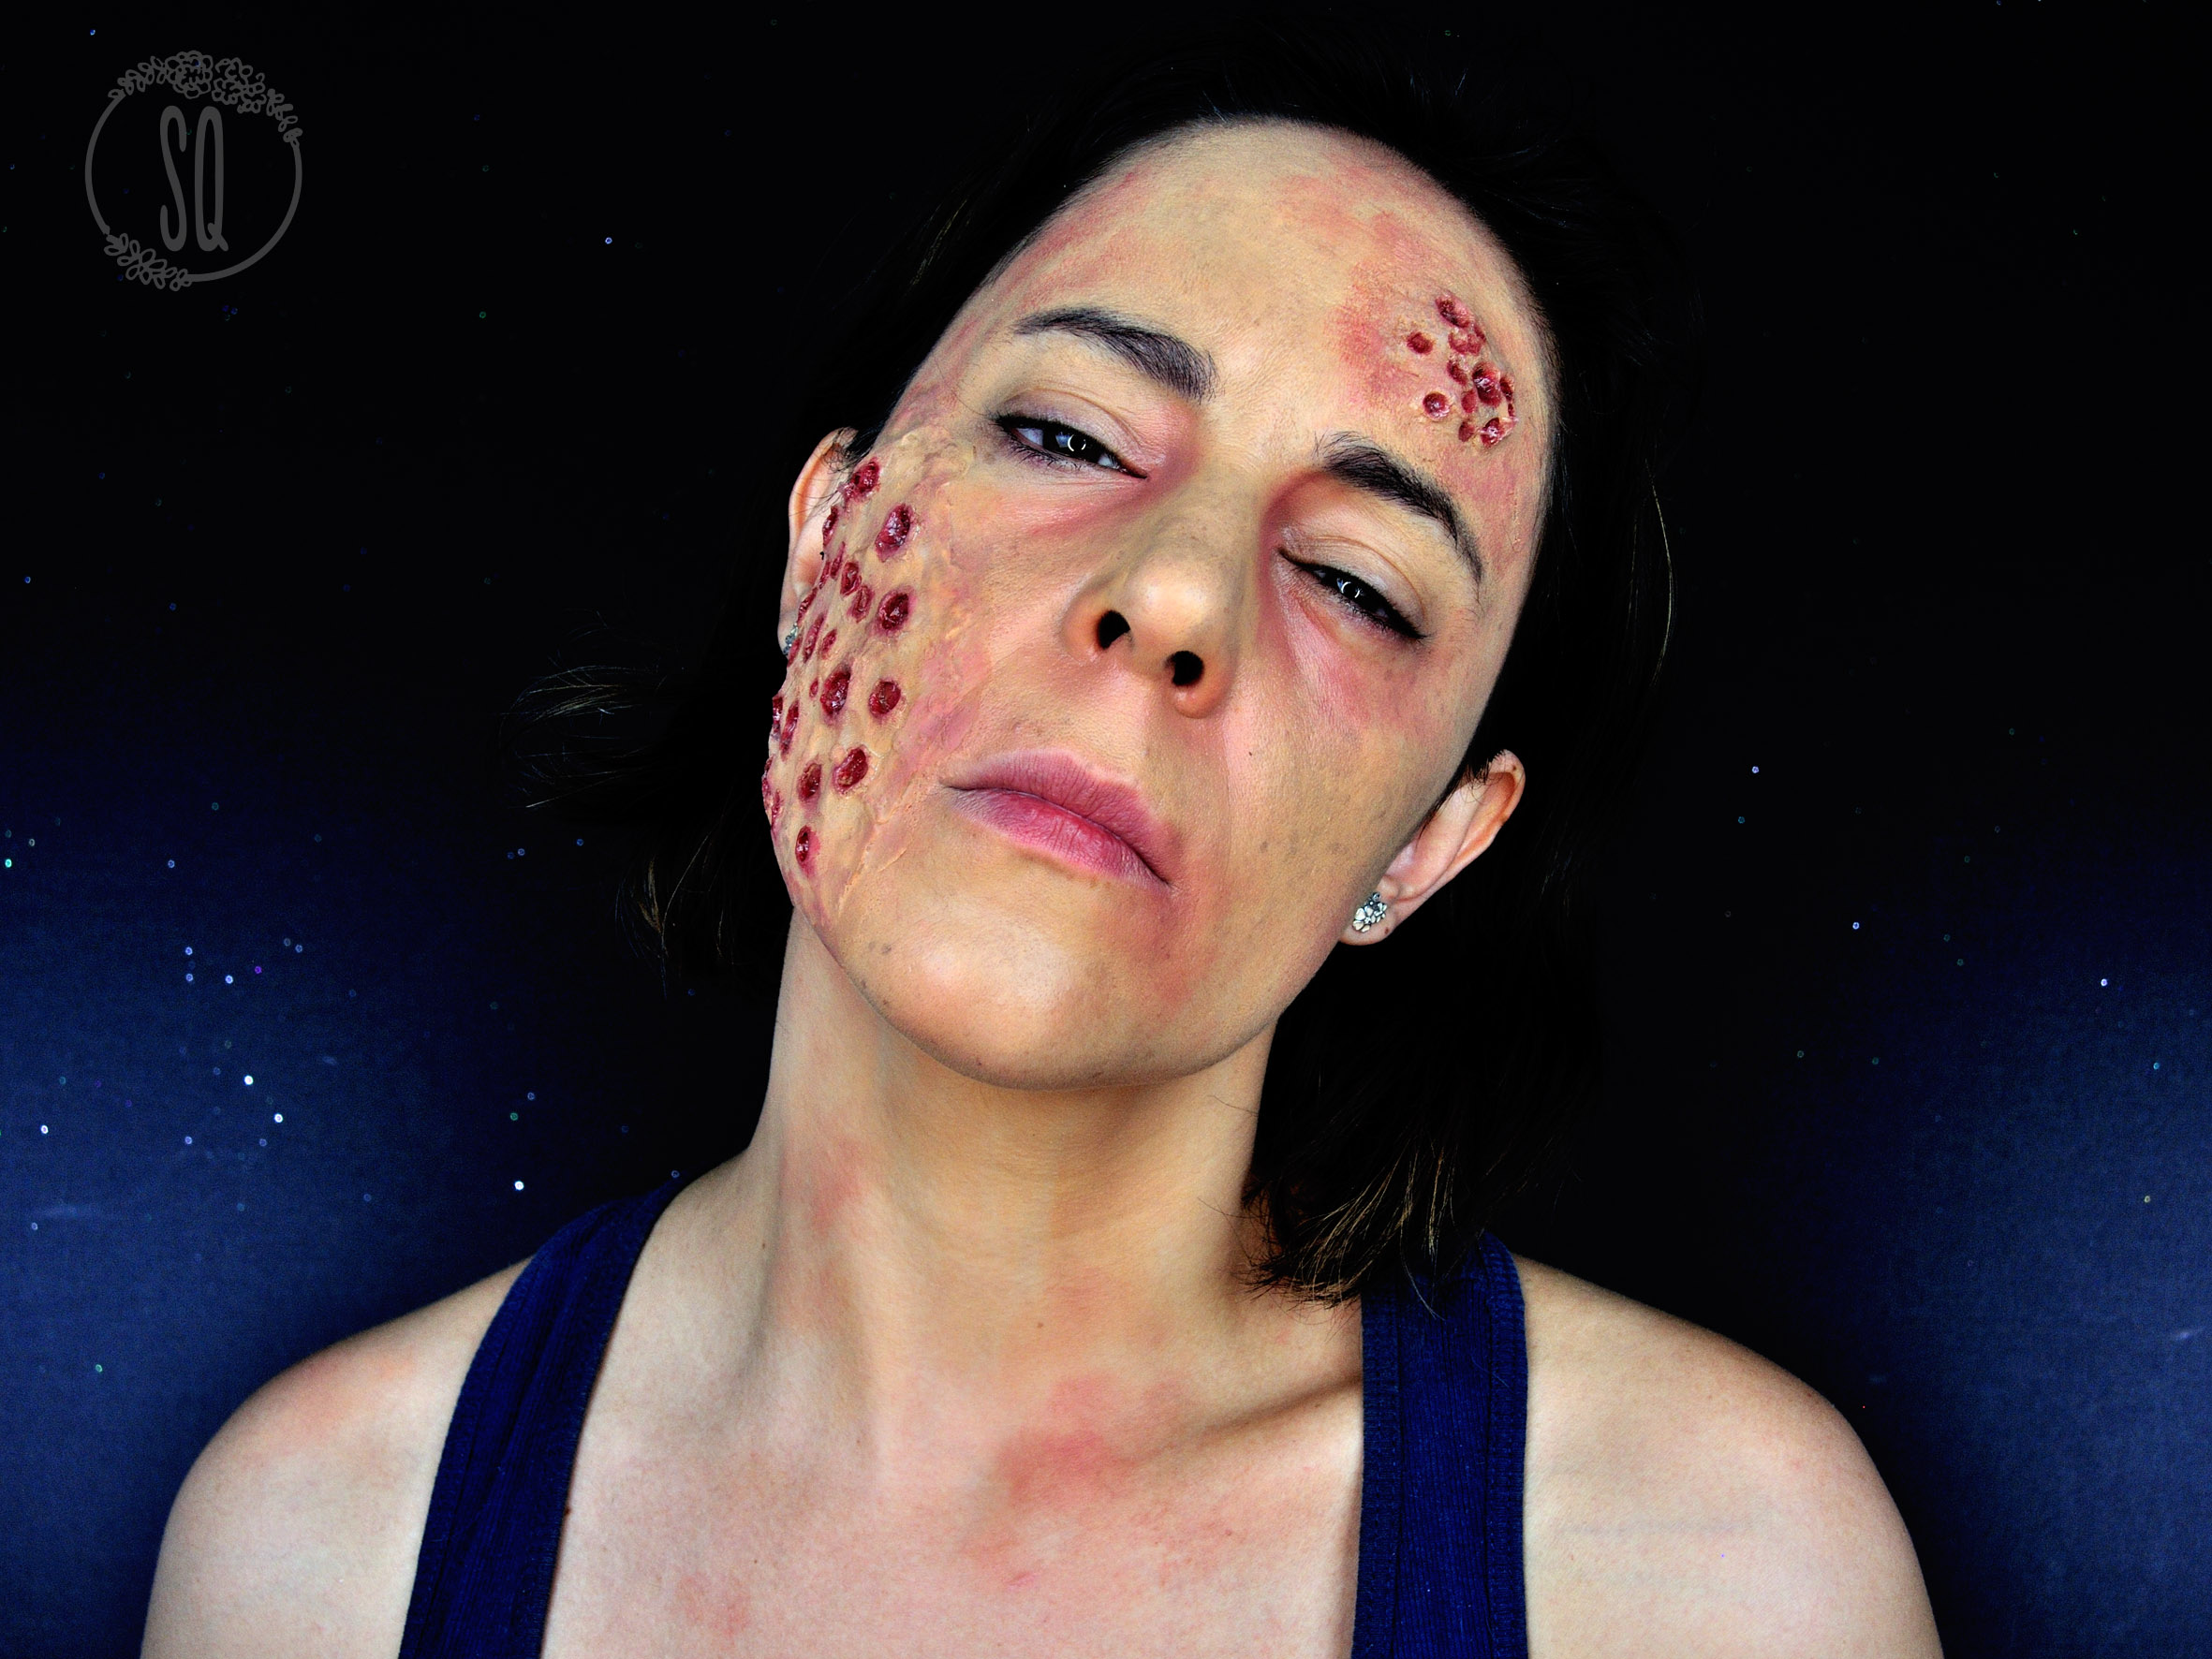 halloween makeup tutorial, trypophobia effects - silvia quirós